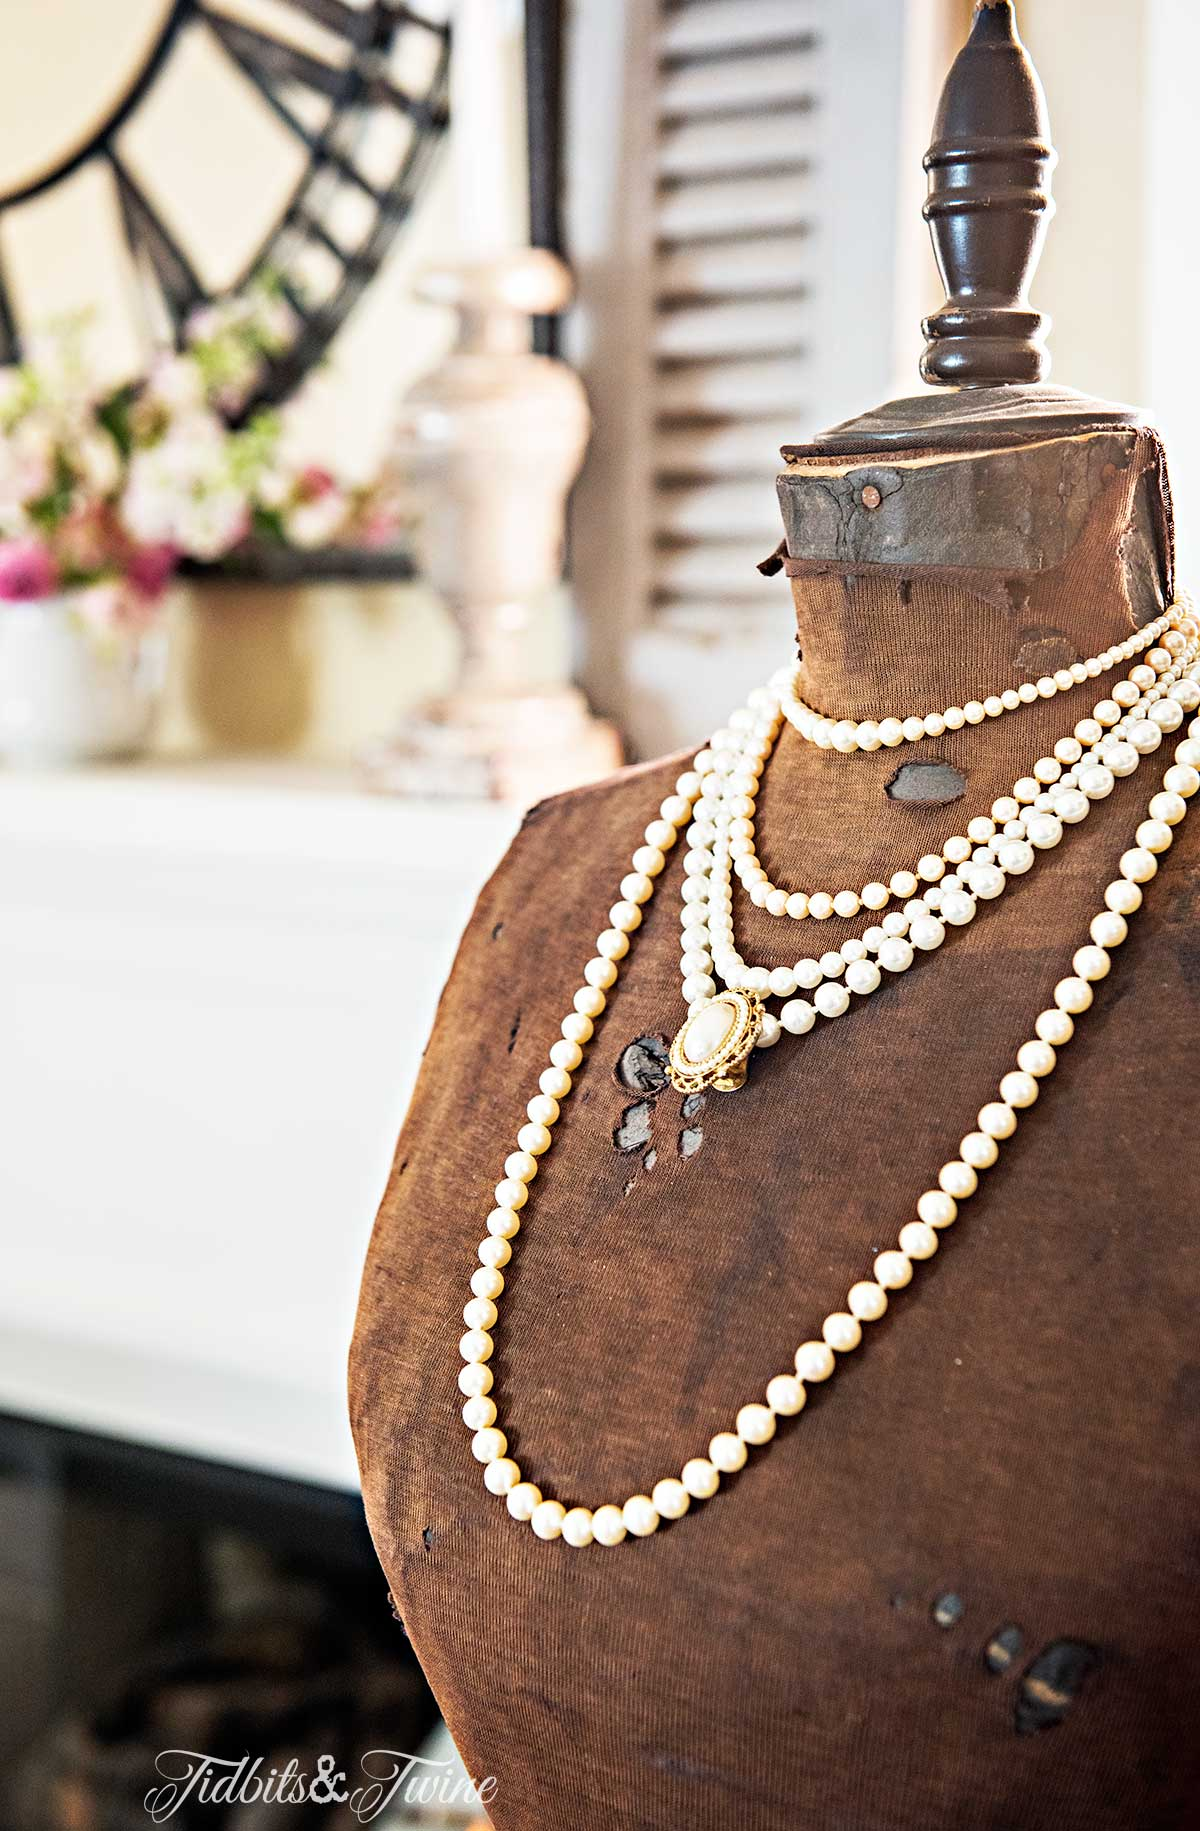 Tidbits&Twine-French-Manequin-and-Pearls-Site